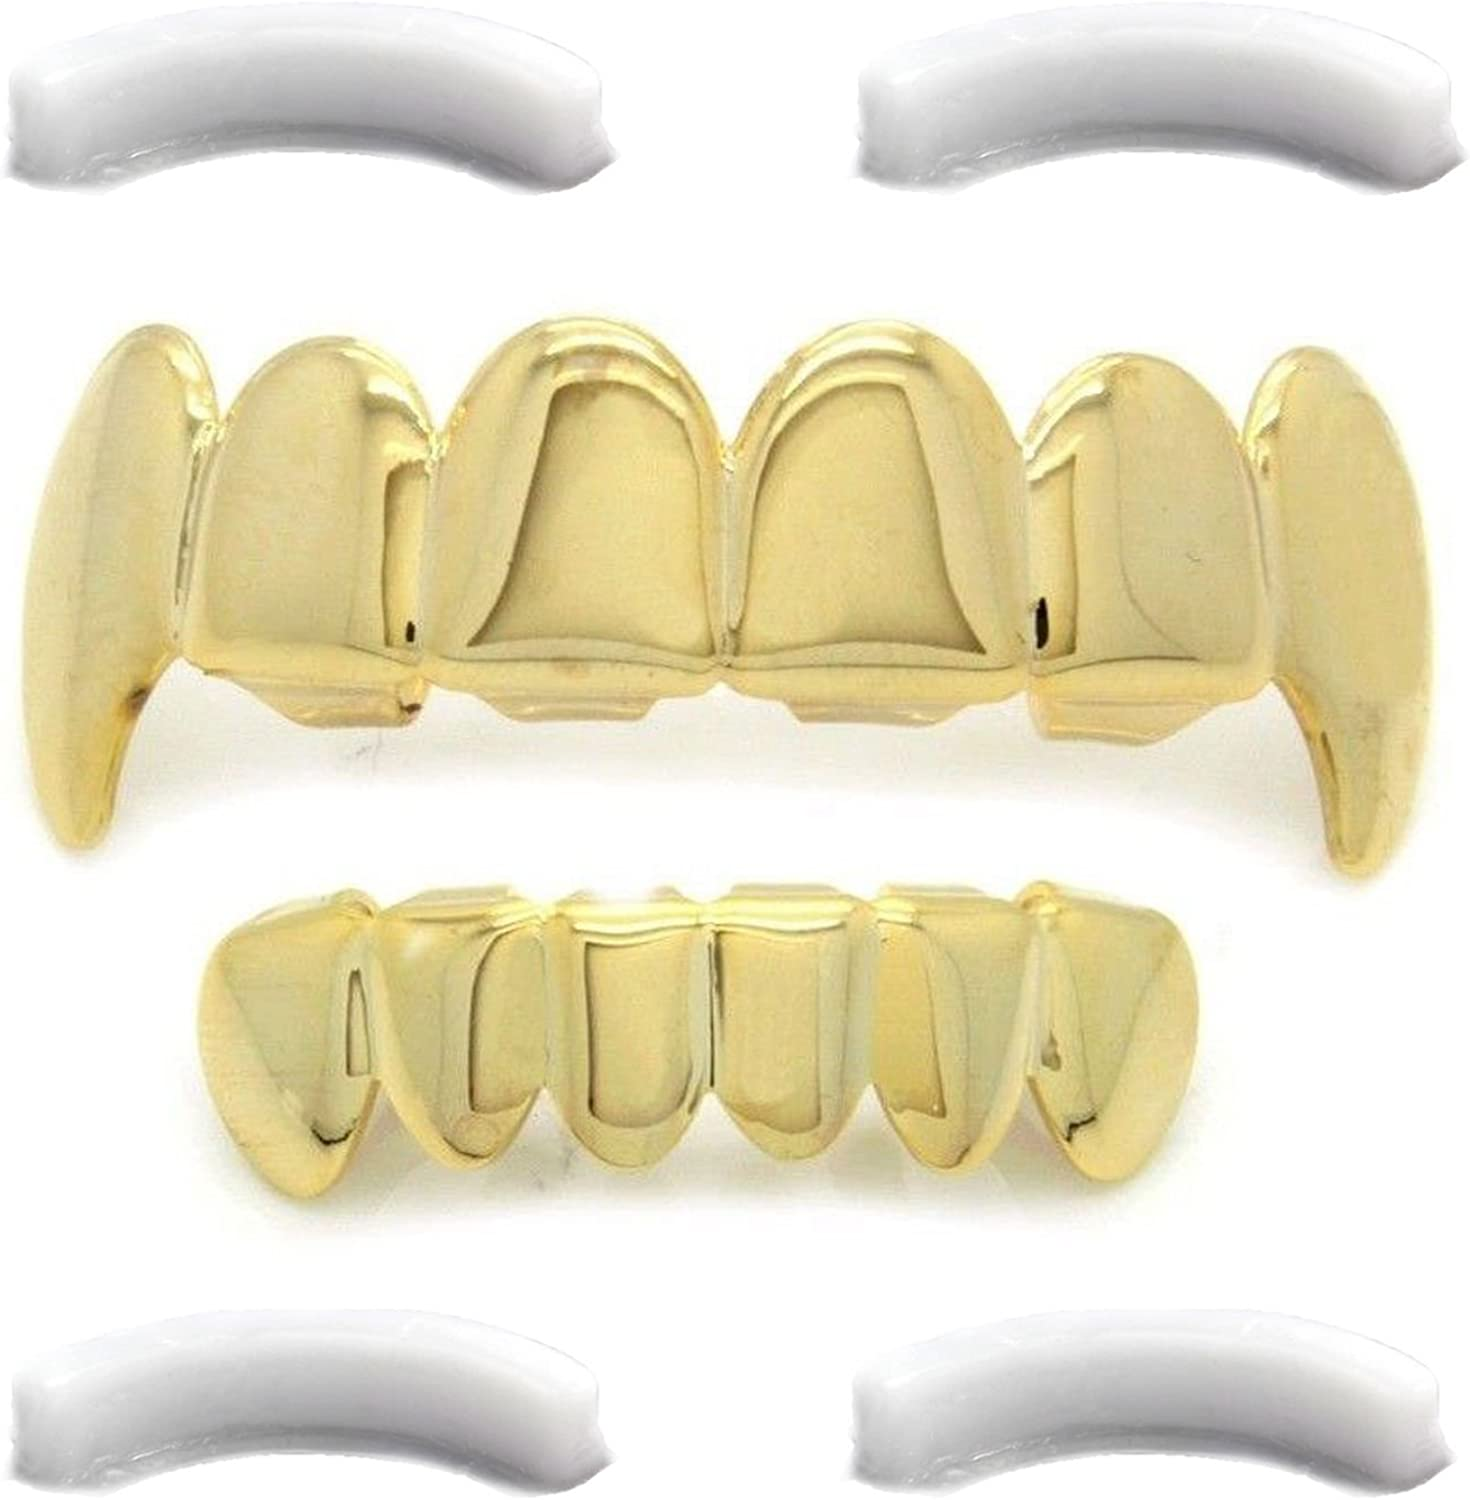 All stores are sold L Nation Gold Choice Tone Hip Hop Grillz Fangs Bottom Top wit Set